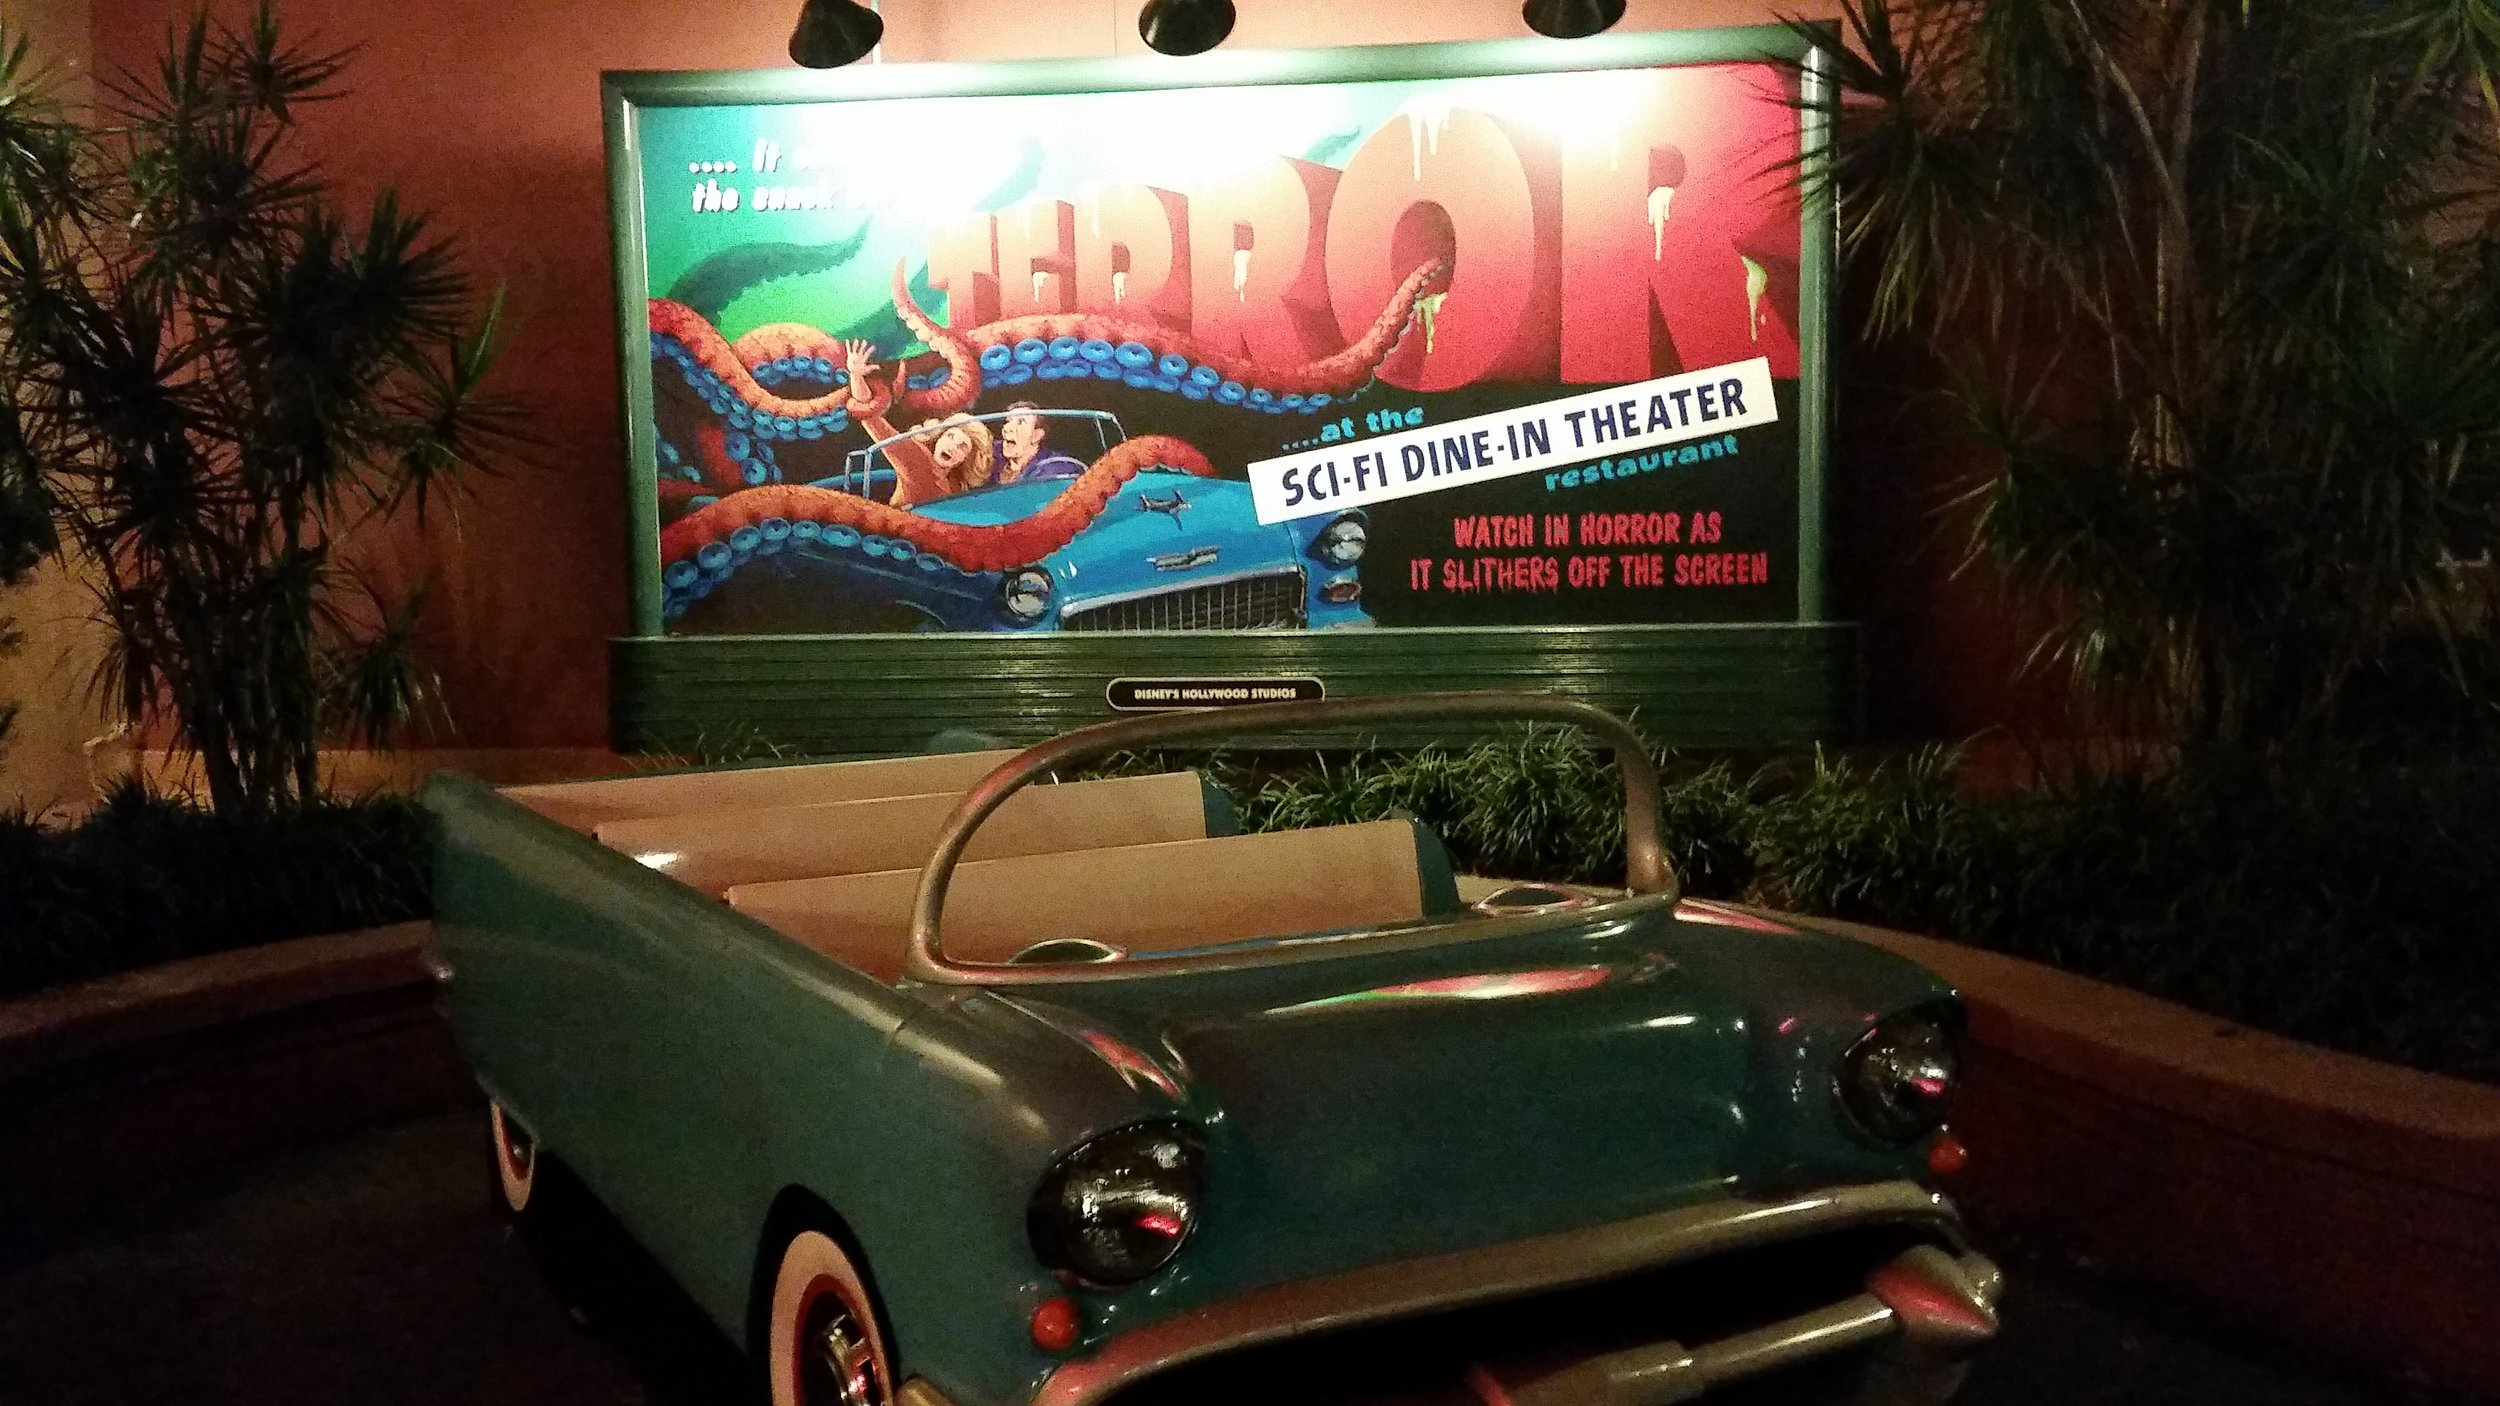 Sci-Fi Dine-In Theater, Commissary Lane, Disney's Hollywood Studios